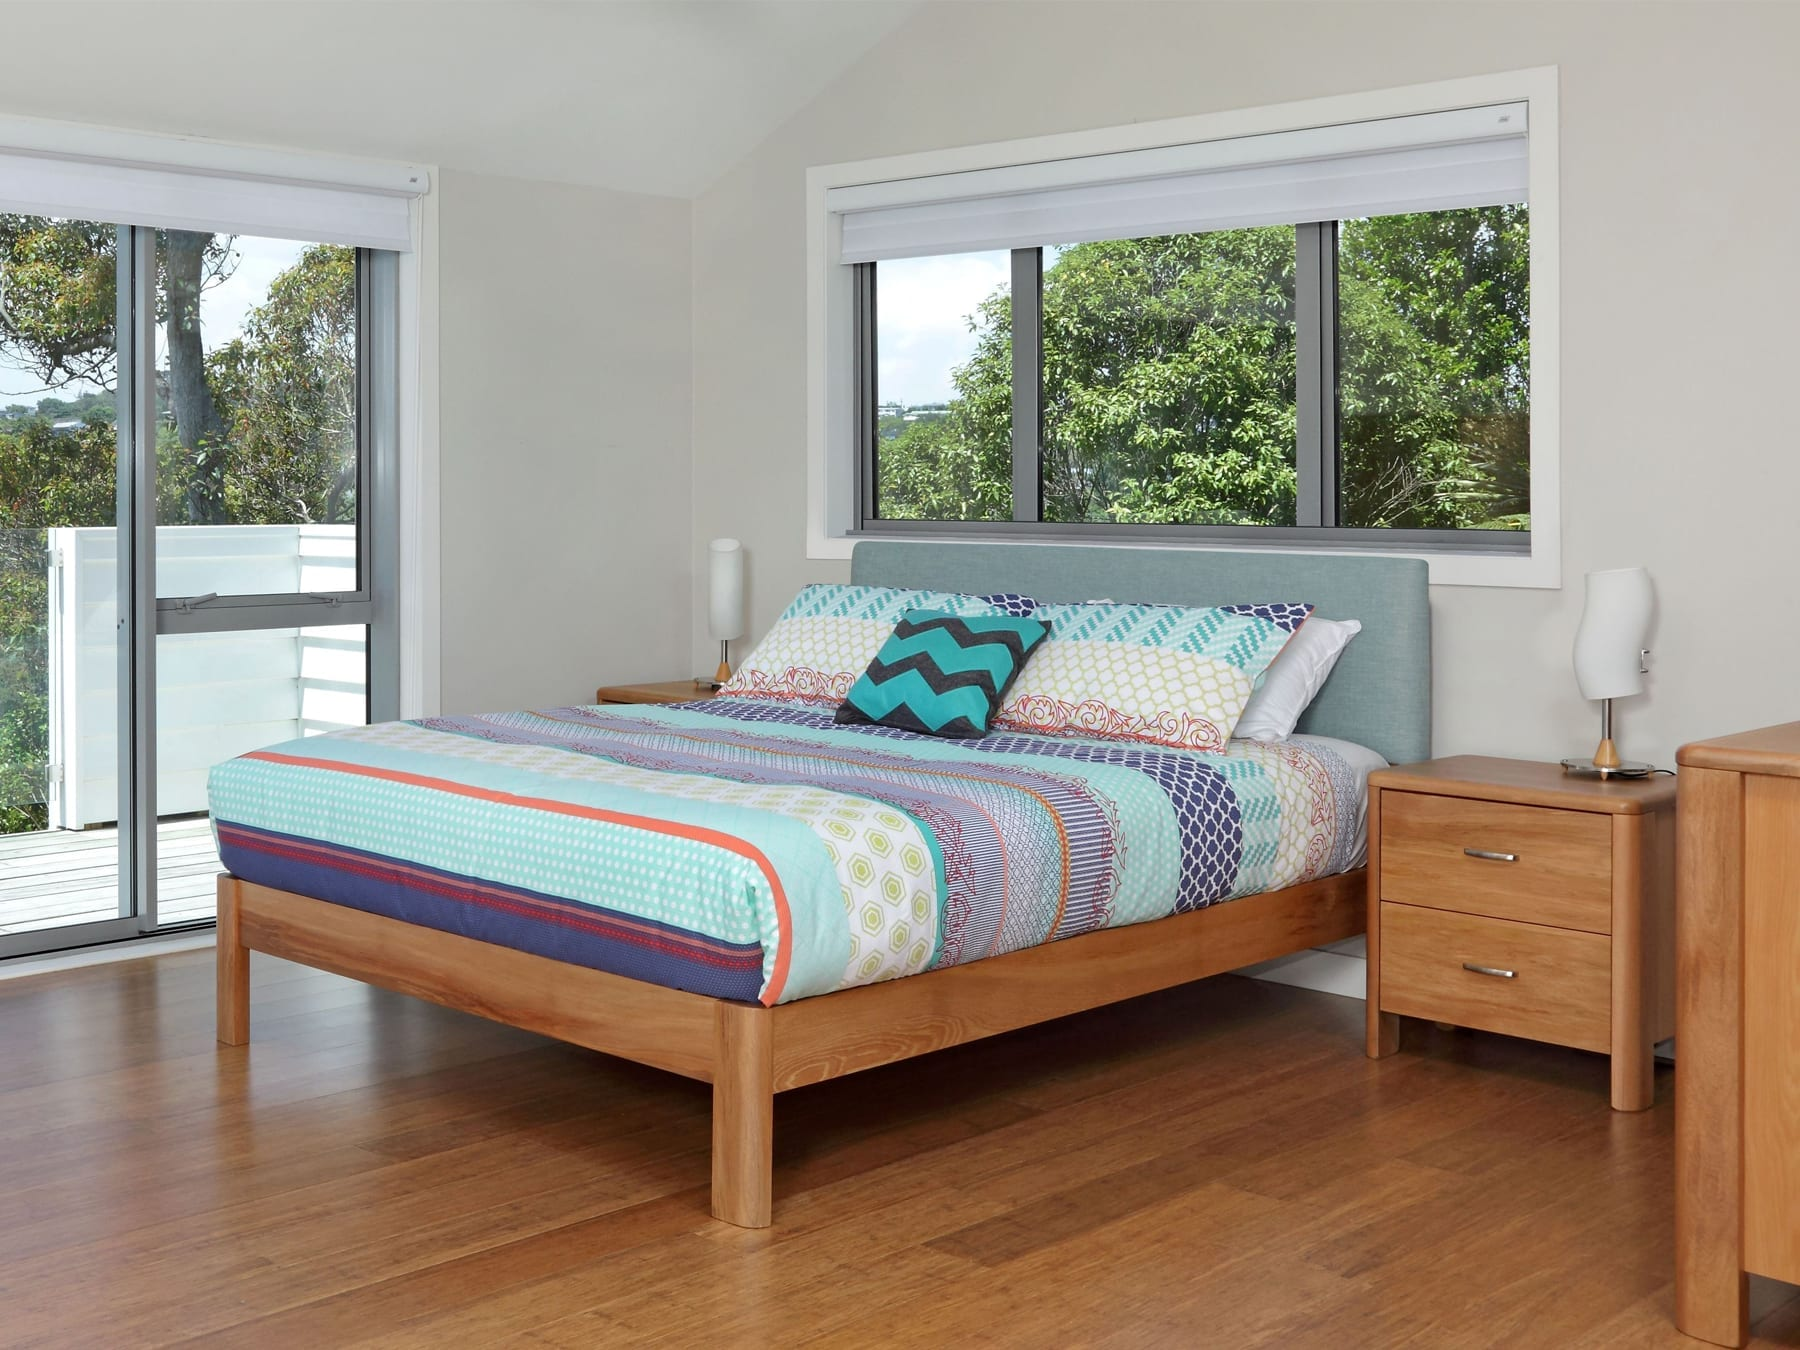 East West Designs Cruise Bedroom Furniture available at McKenzie & Willis